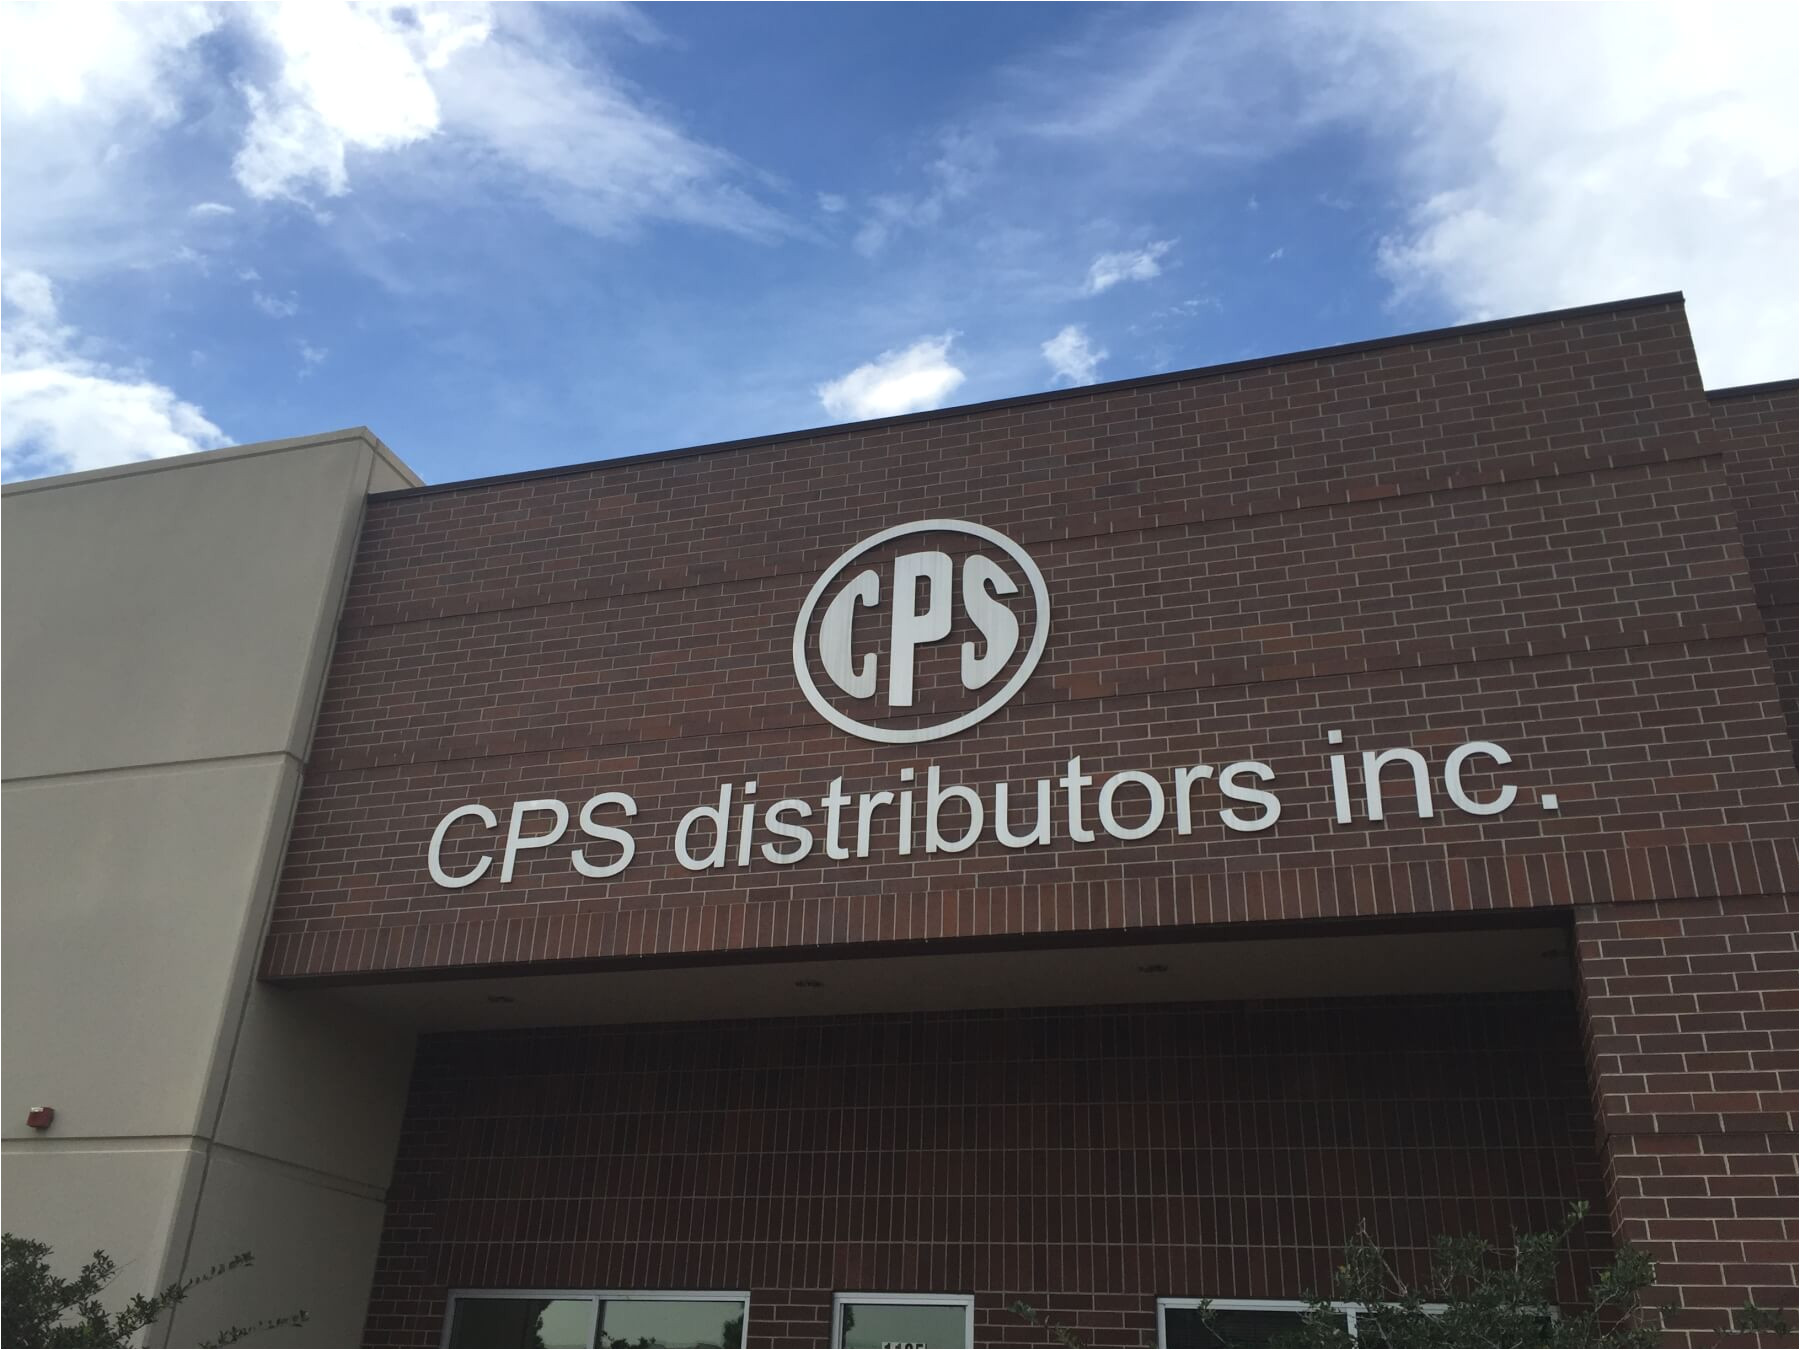 cps corporate offices in westminster colorado irrigation